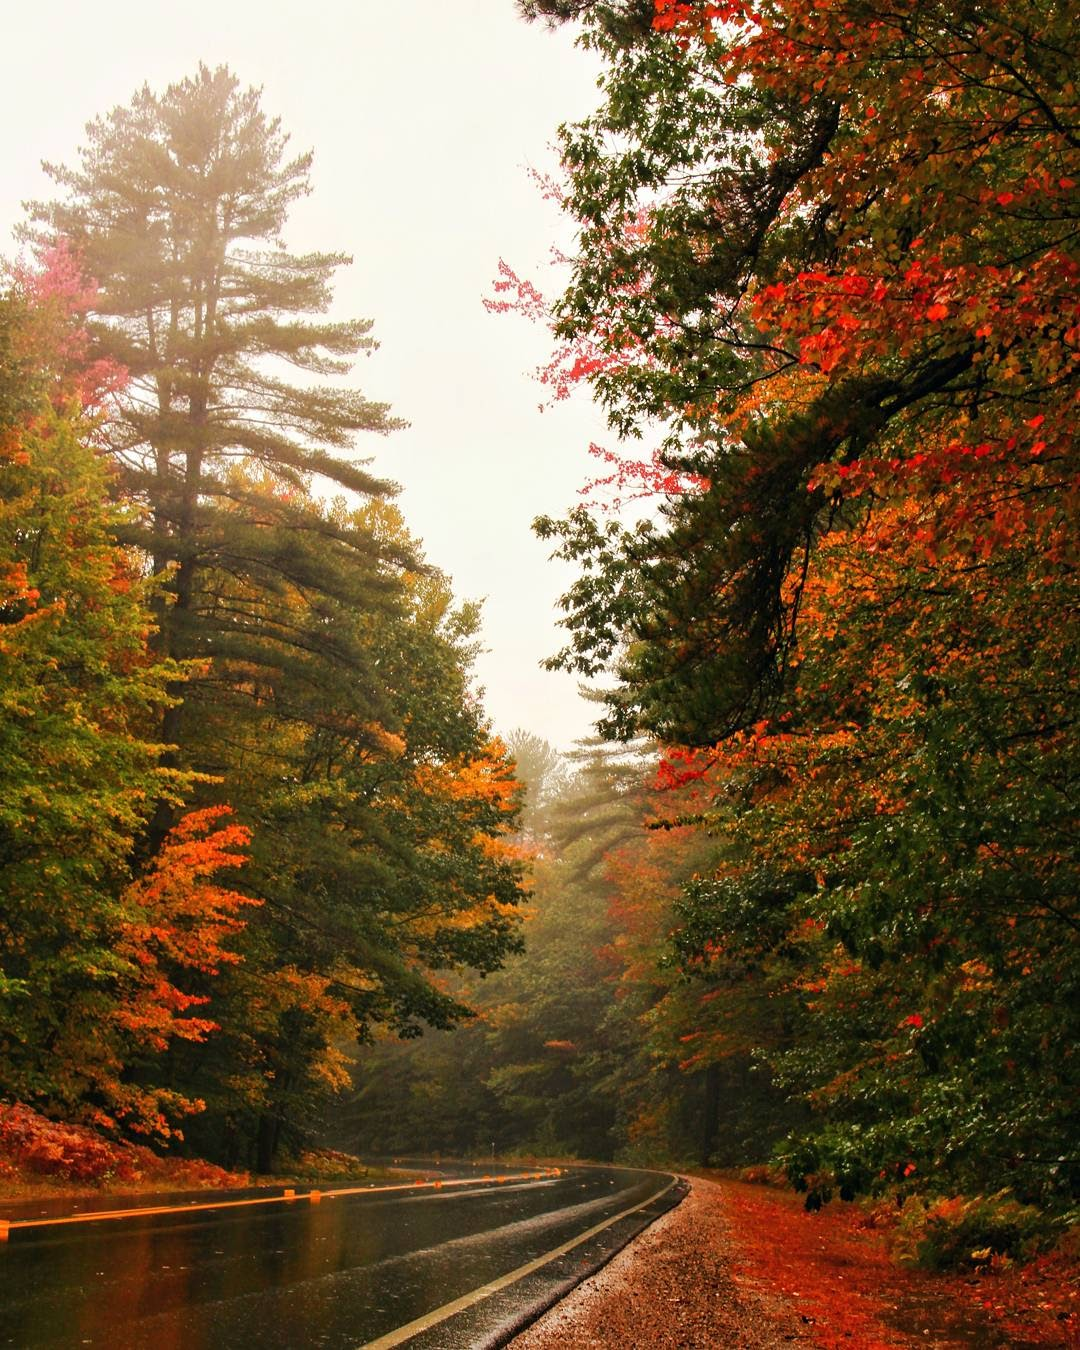 kancamagus highway in new hampshire oct 8, 2017